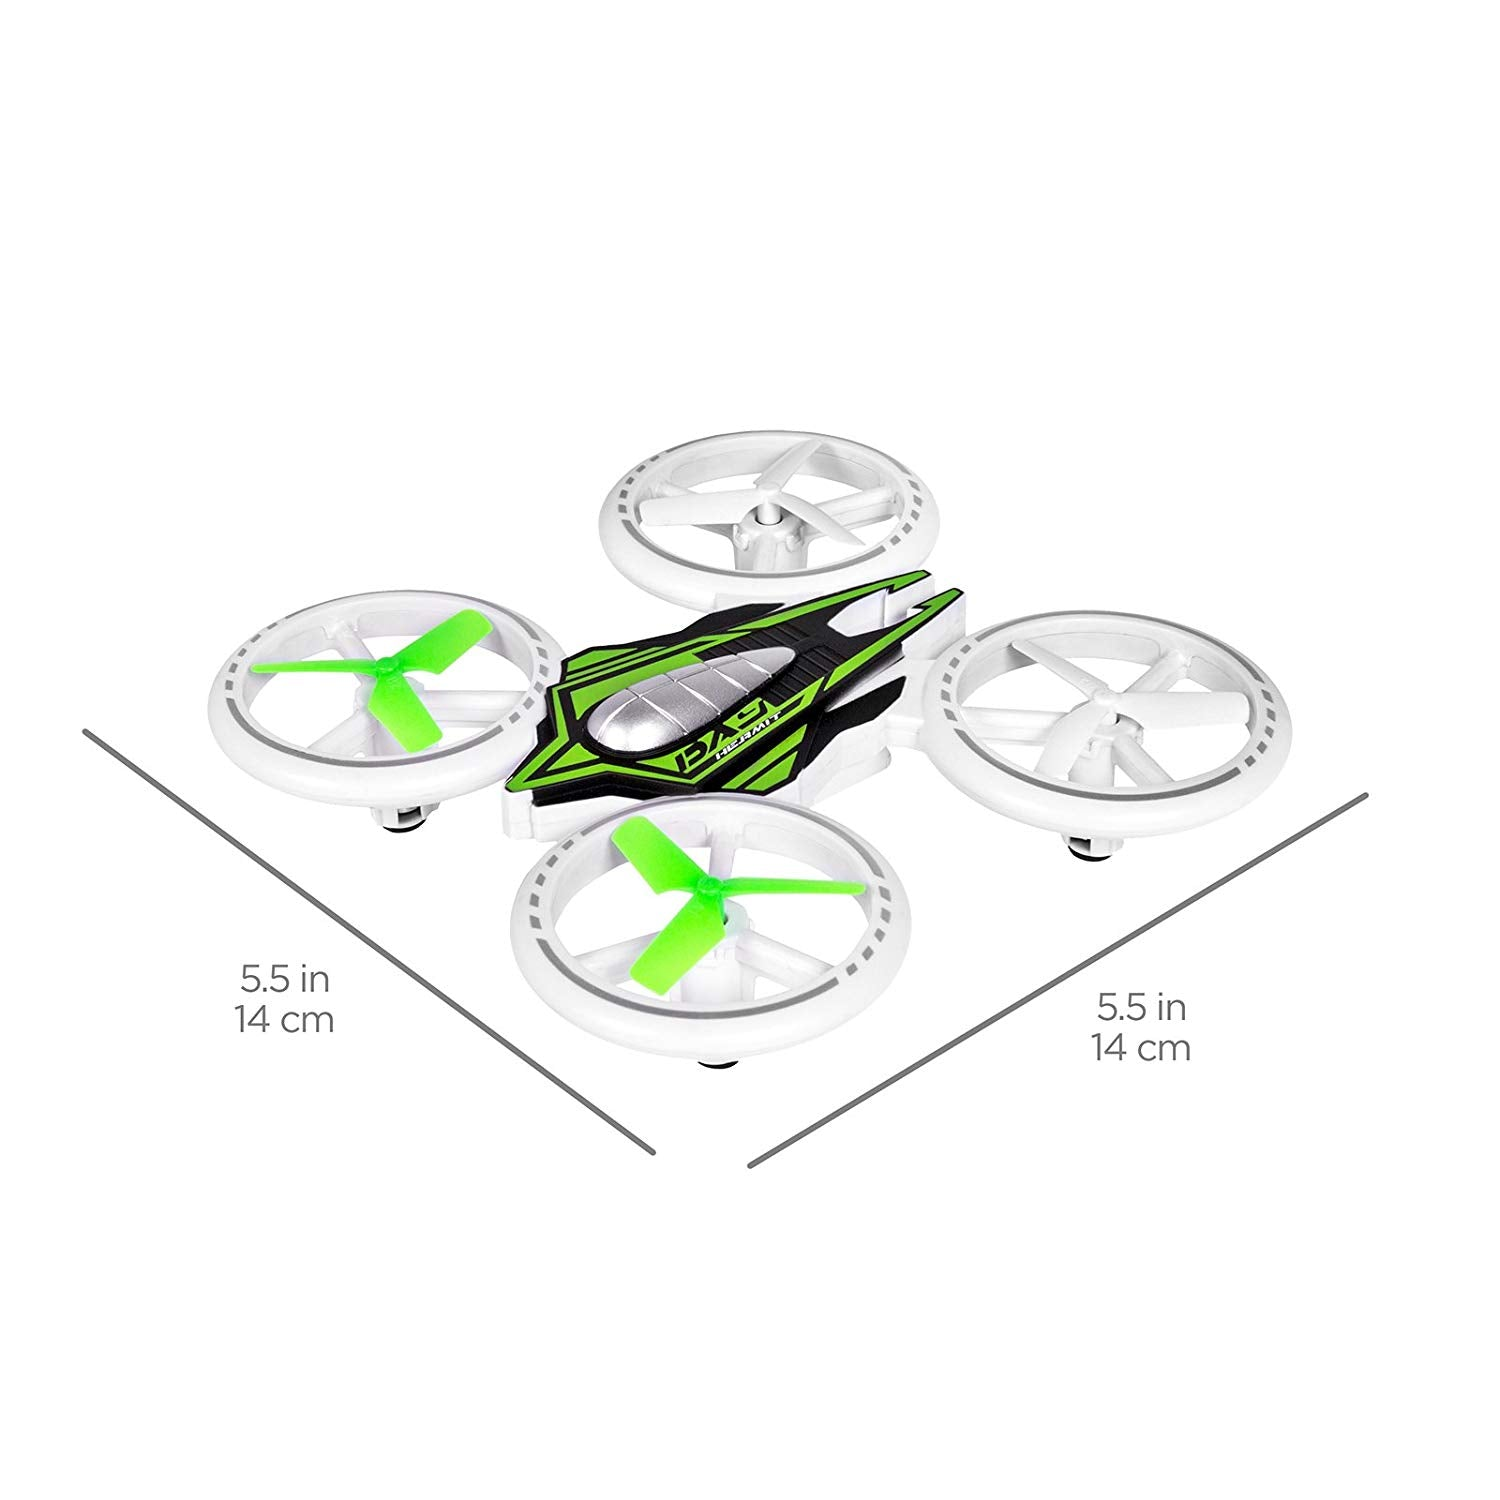 2.4GHz Remote Control Light-Up LED RC Drone Quadcopter UFO Star Ship w/ Altitude Hold -Multicolor